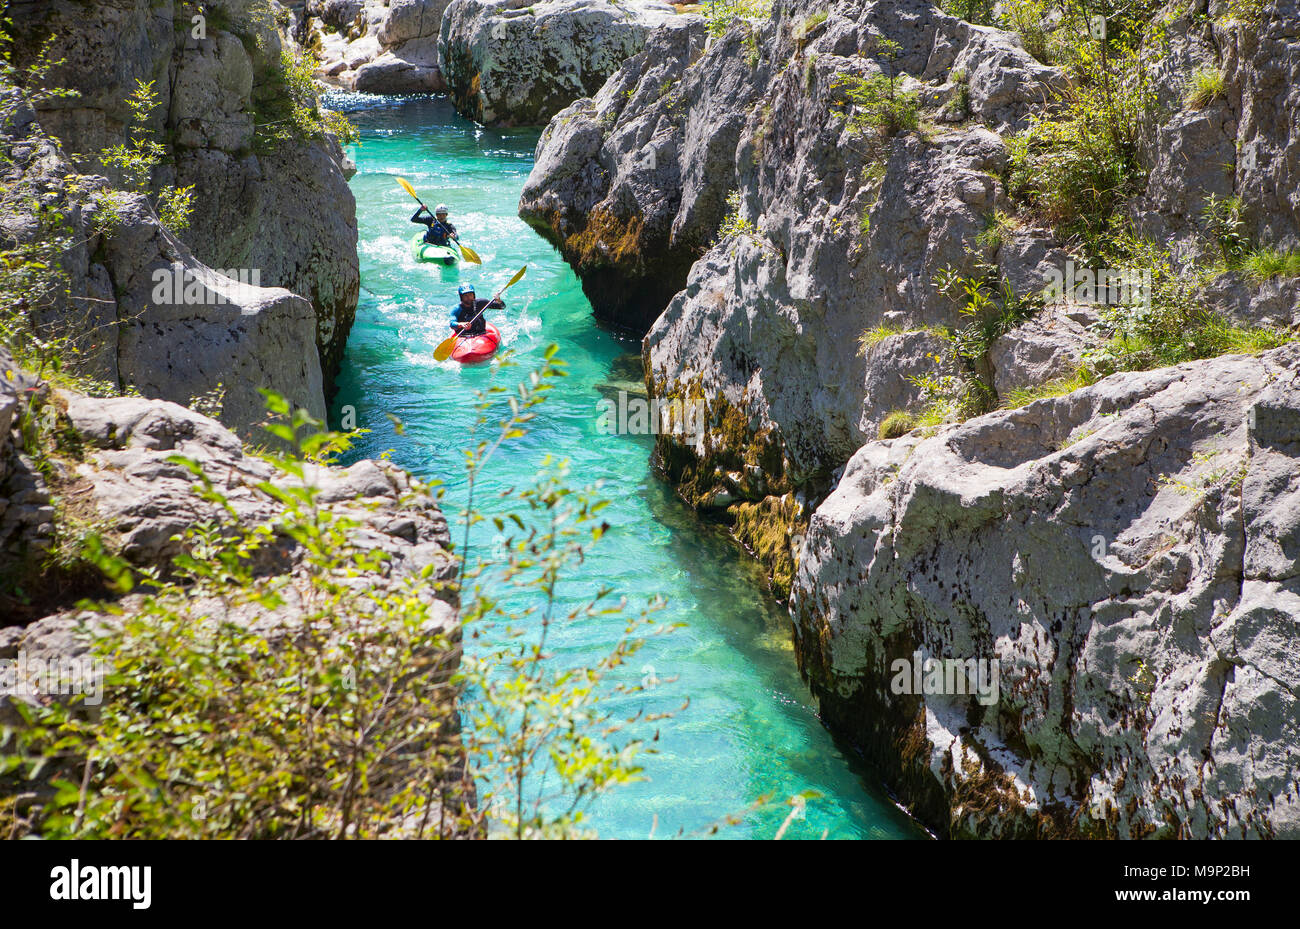 Kayakkers on the emerald Soca near Bovec in Slovenia. This green colored river, originating in the Triglav mountains, is famous for all kinds of white water activities. - Stock Image